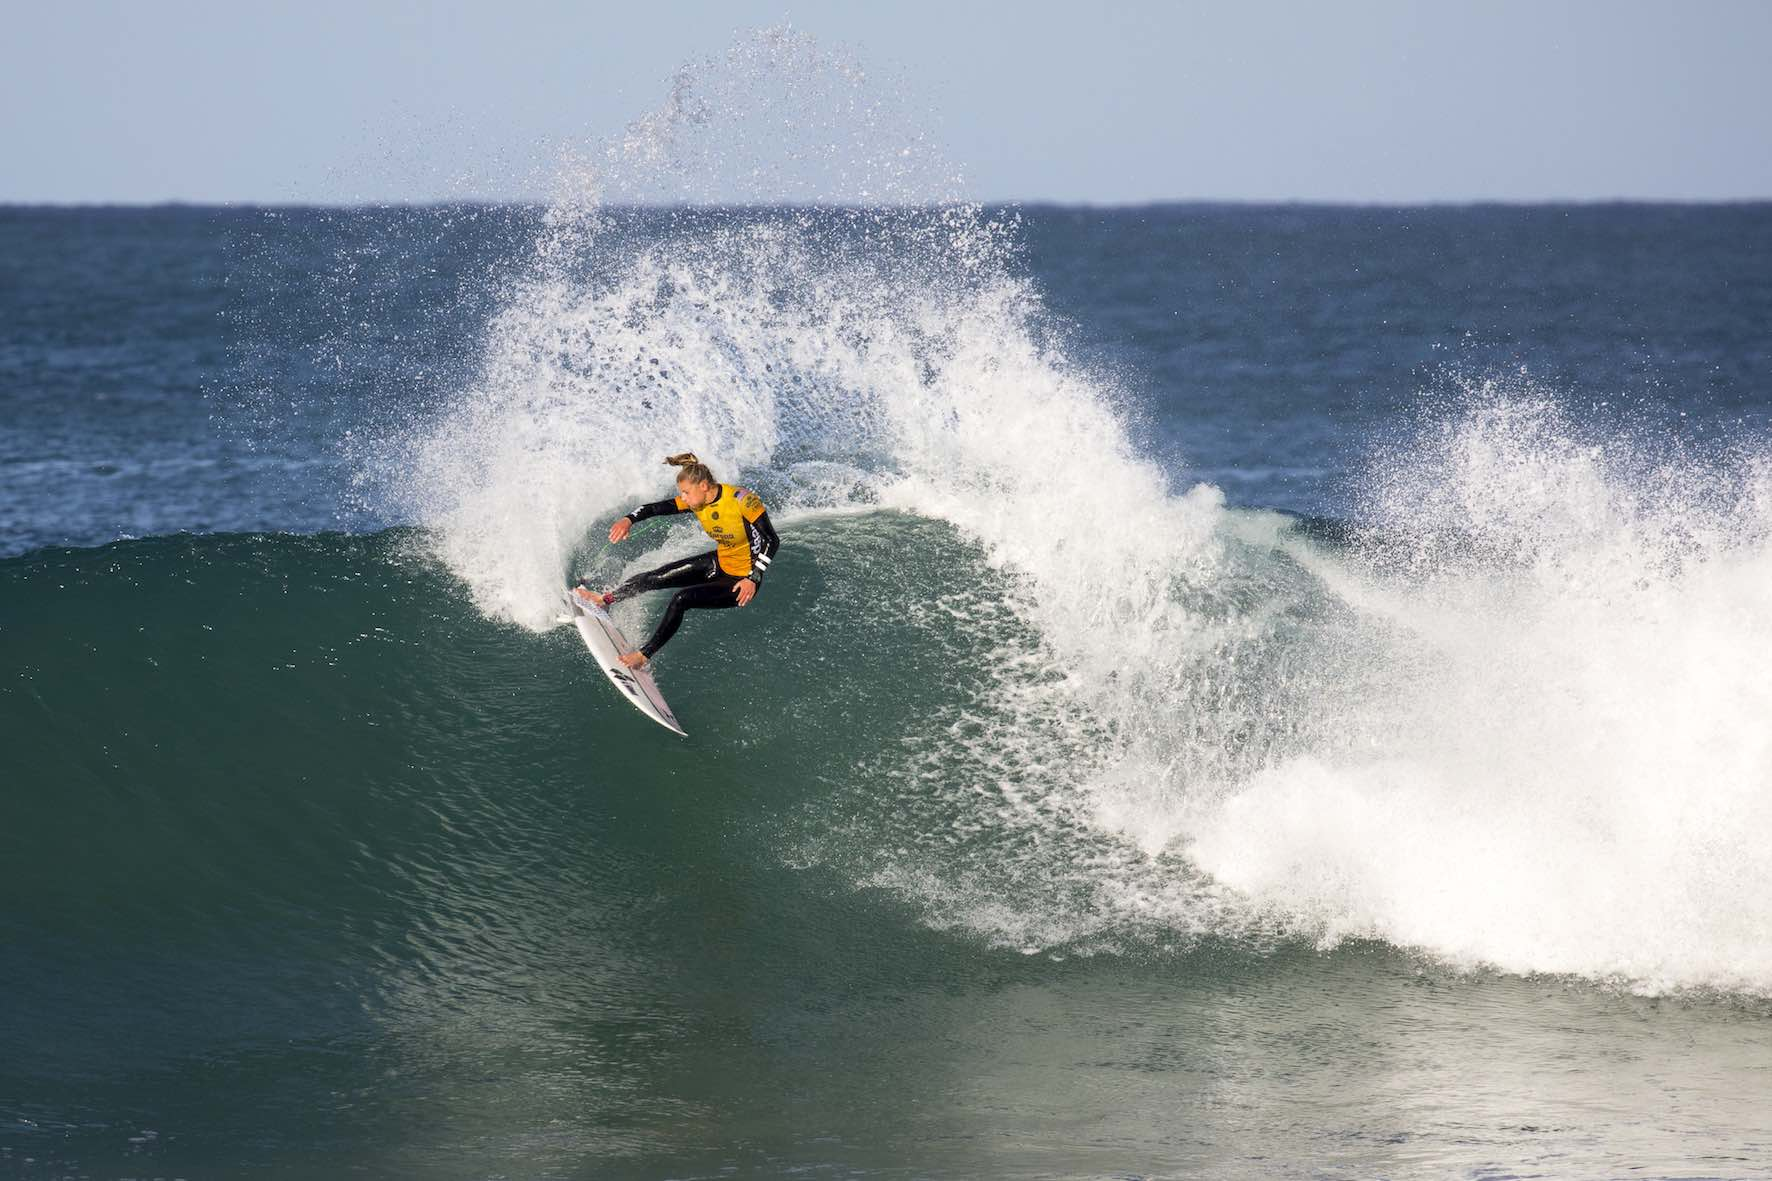 Lakey Peterson surfing her way to 2nd place at the 2018 Corona Open J-Bay